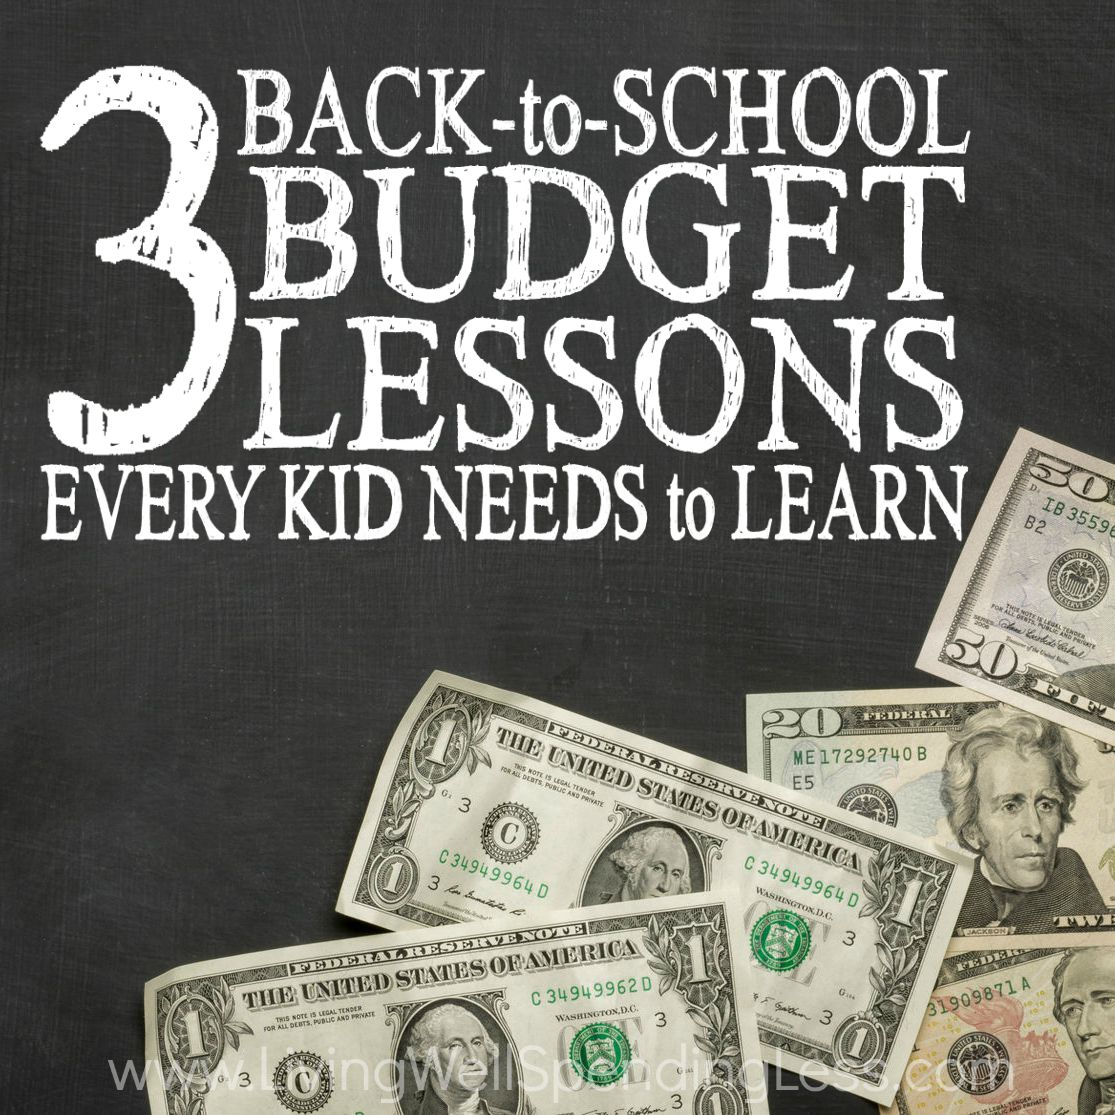 Back to School on a Budget Posted by Karisa on Aug 14, in Articles | 0 comments According to some reports, parents will spend more than $1, buying back-to-school items for their kids.